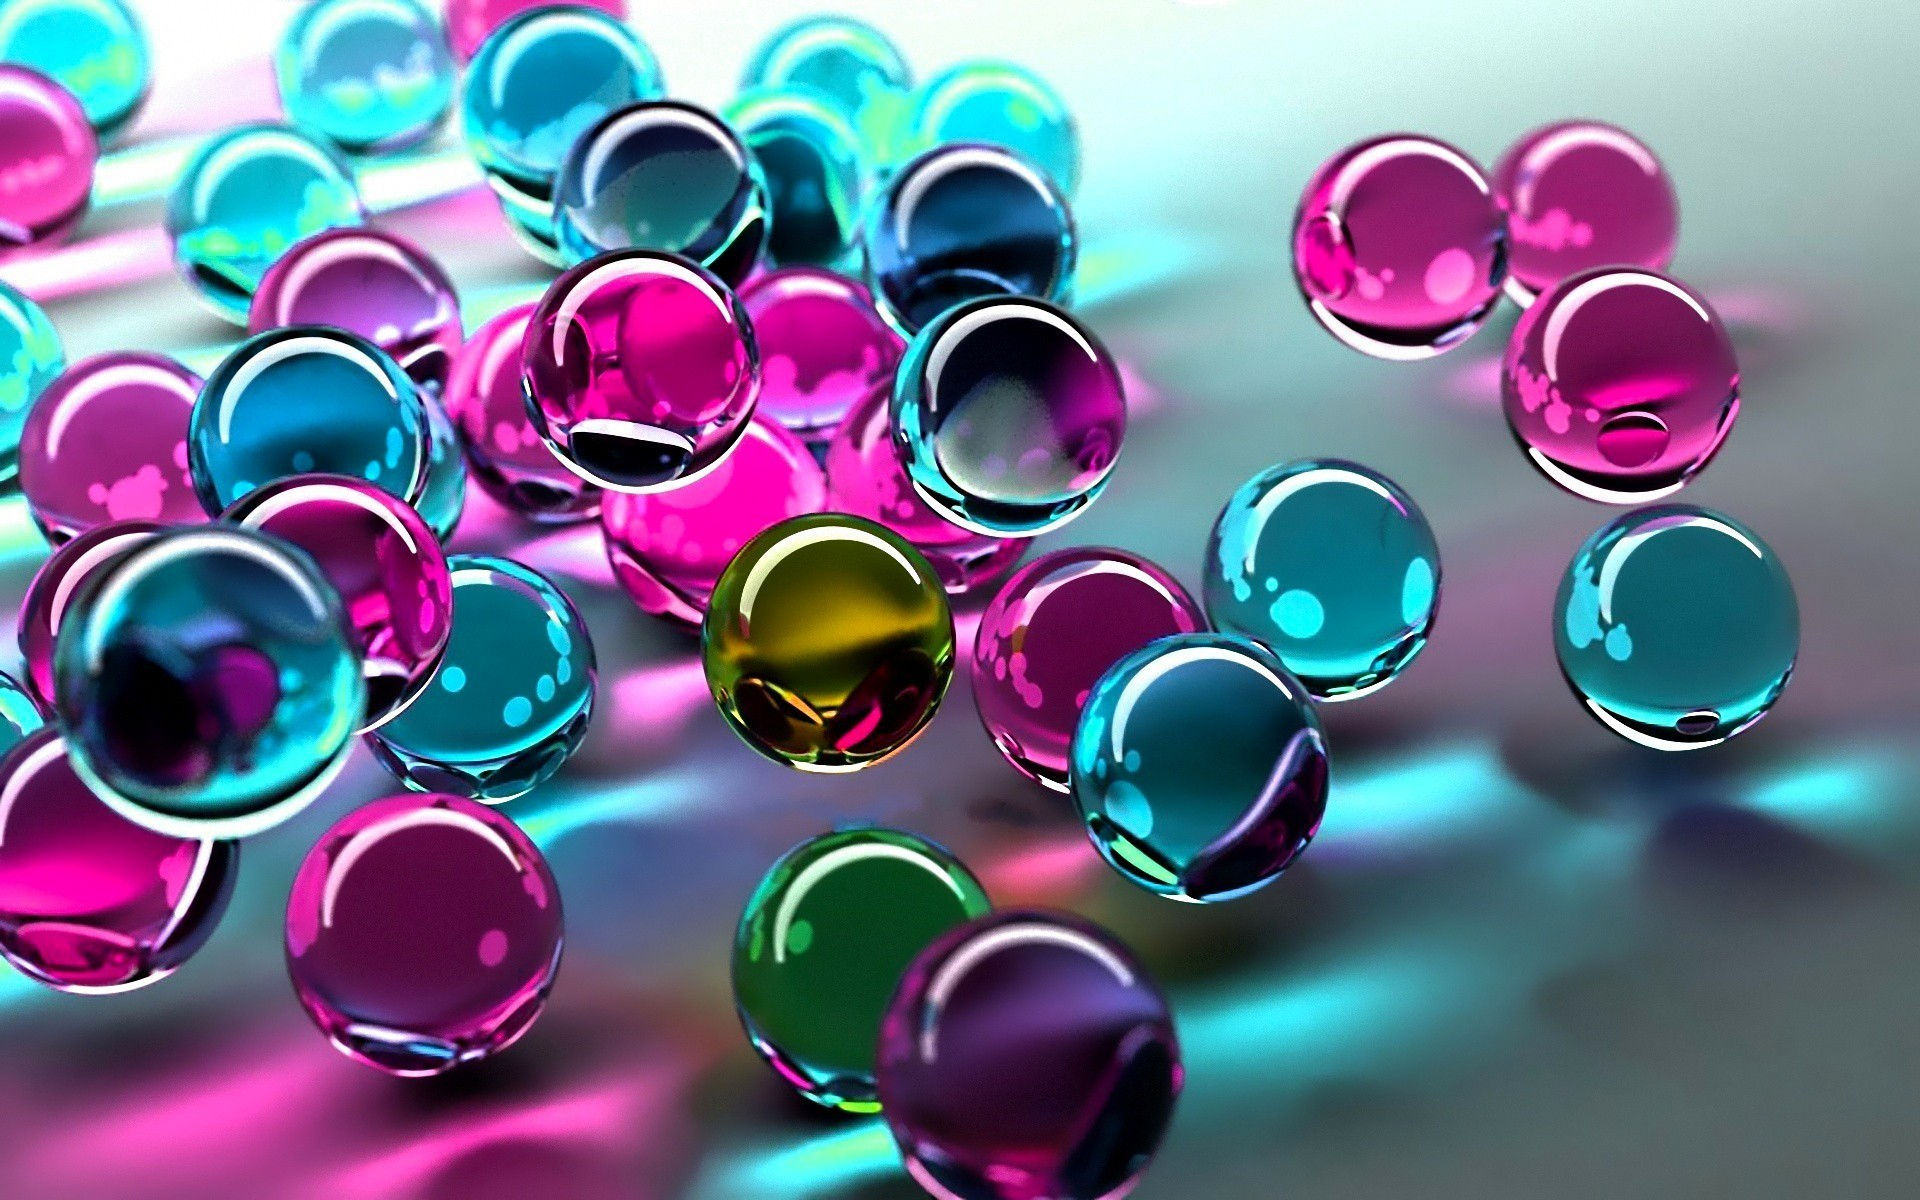 Marbles wallpaper photo